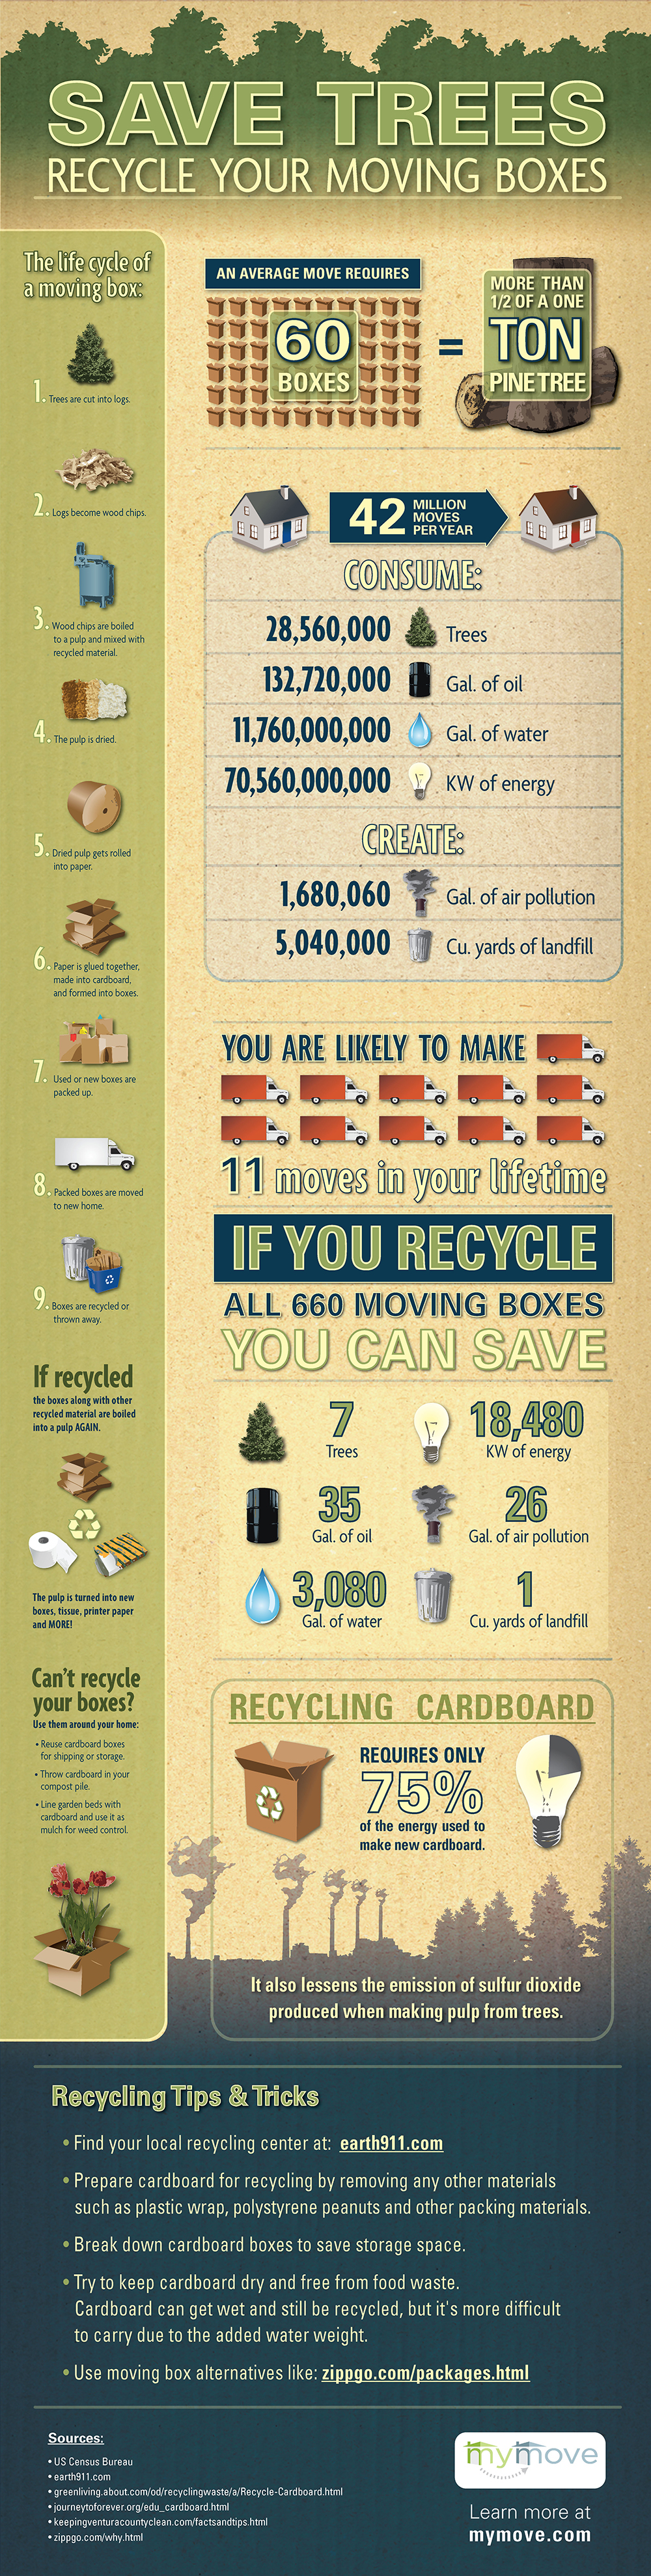 infographic,ILLUSTRATION ,recycling,movers,mover marketing,mymove.com